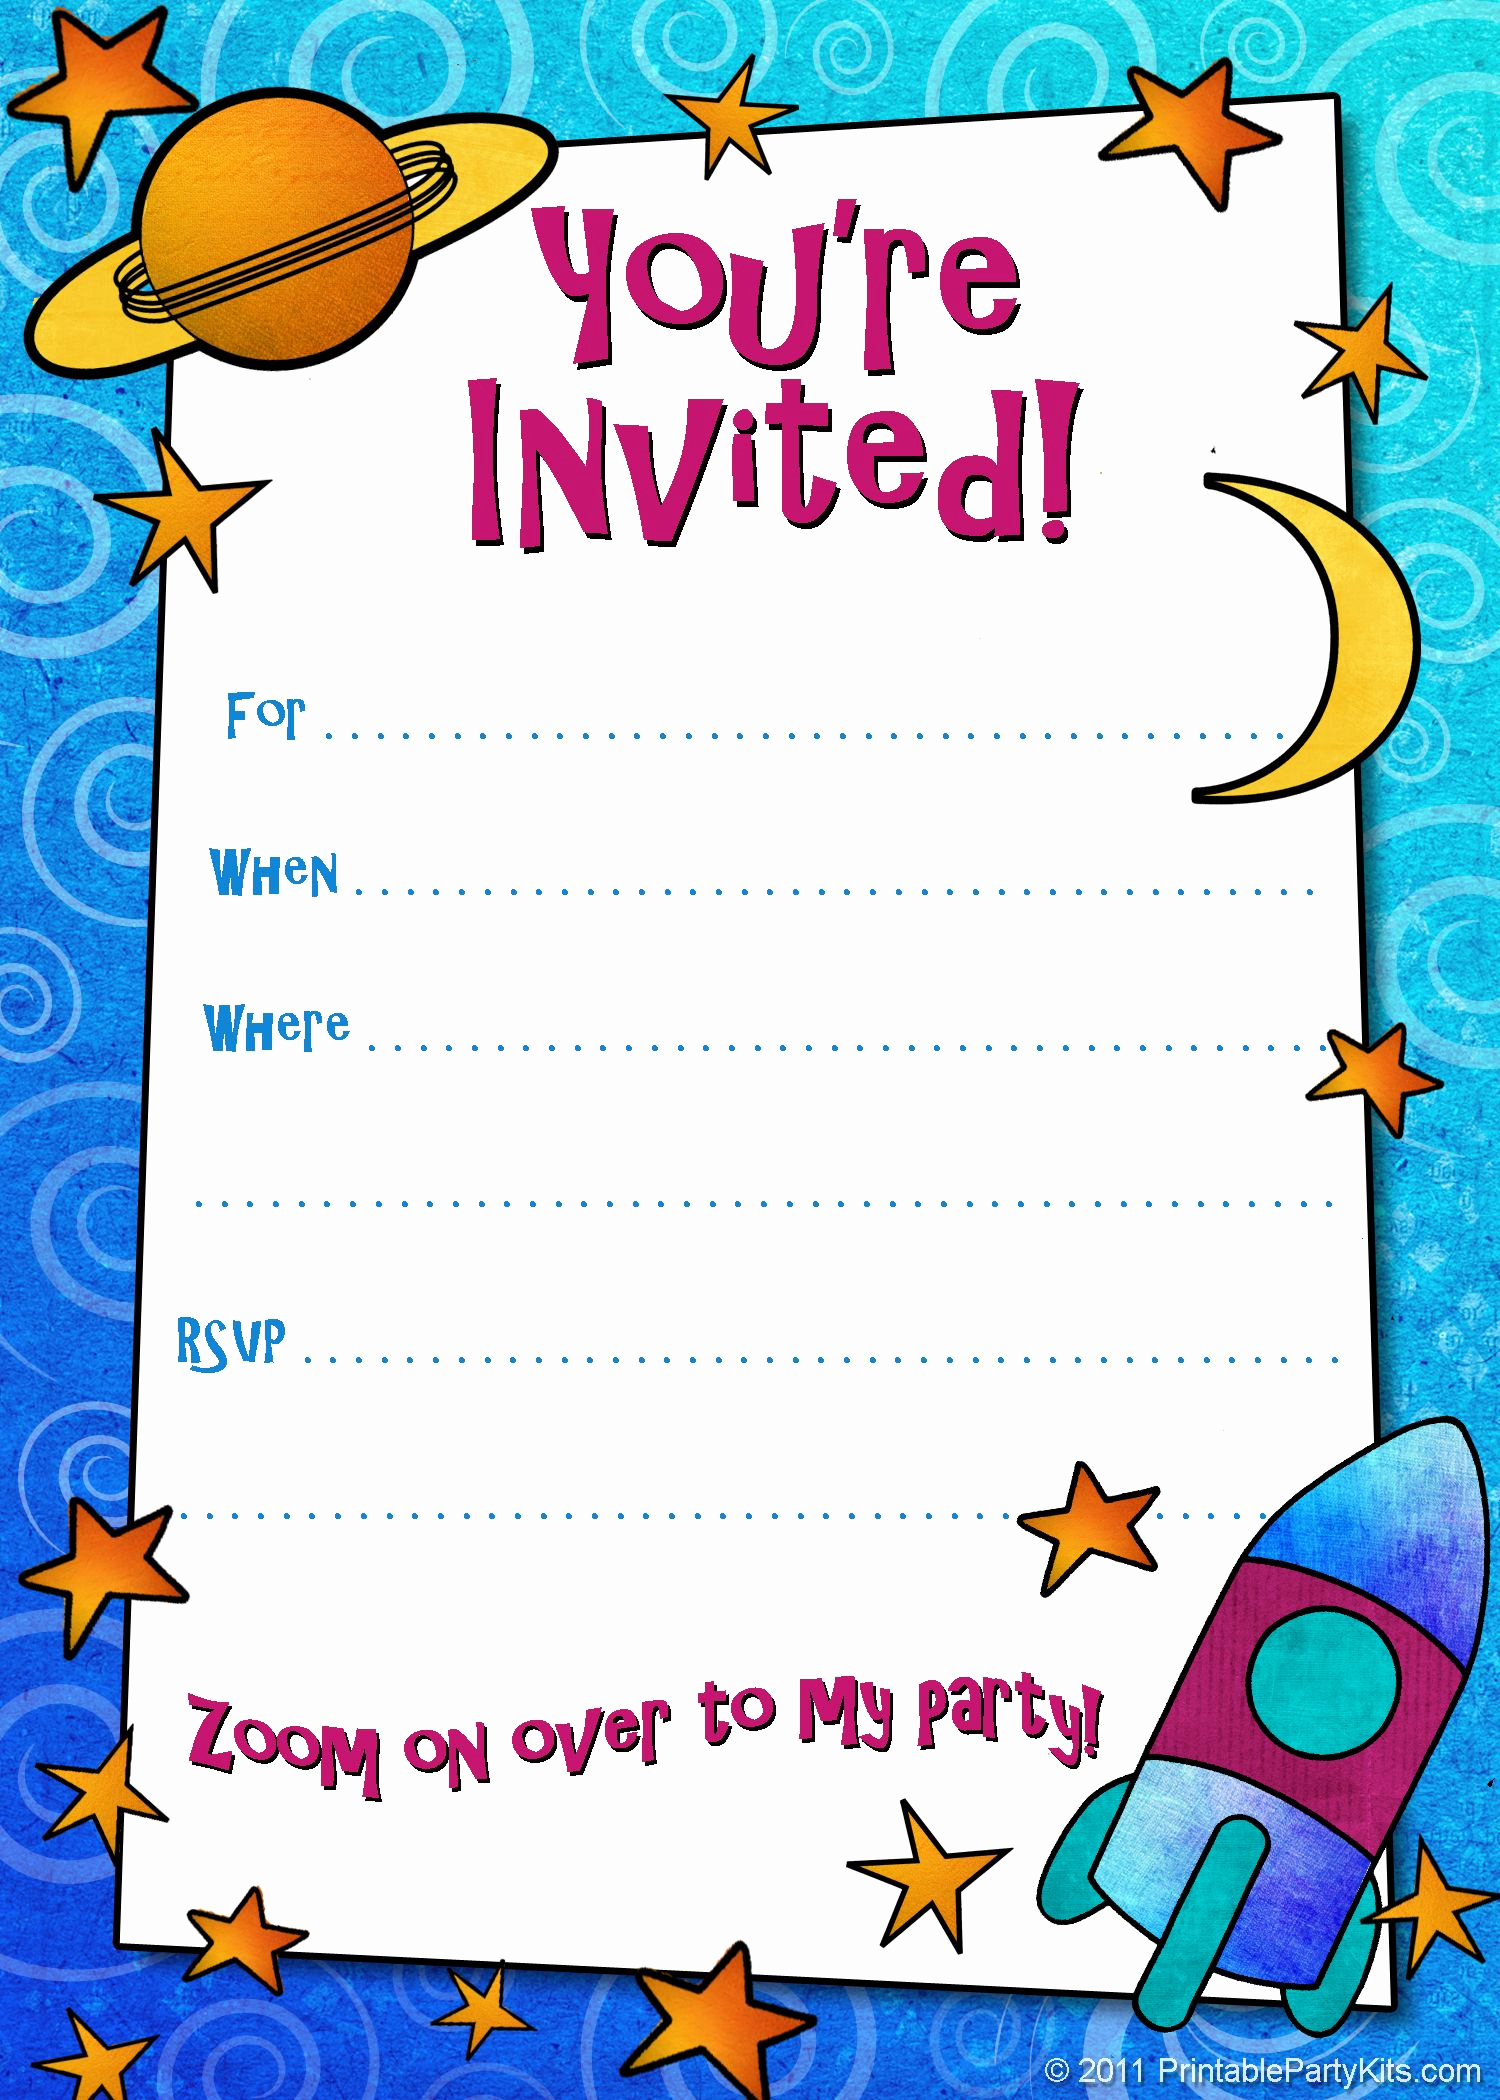 Kids Birthday Party Invitation Template Luxury Free Printable Boys Birthday Party Invitations